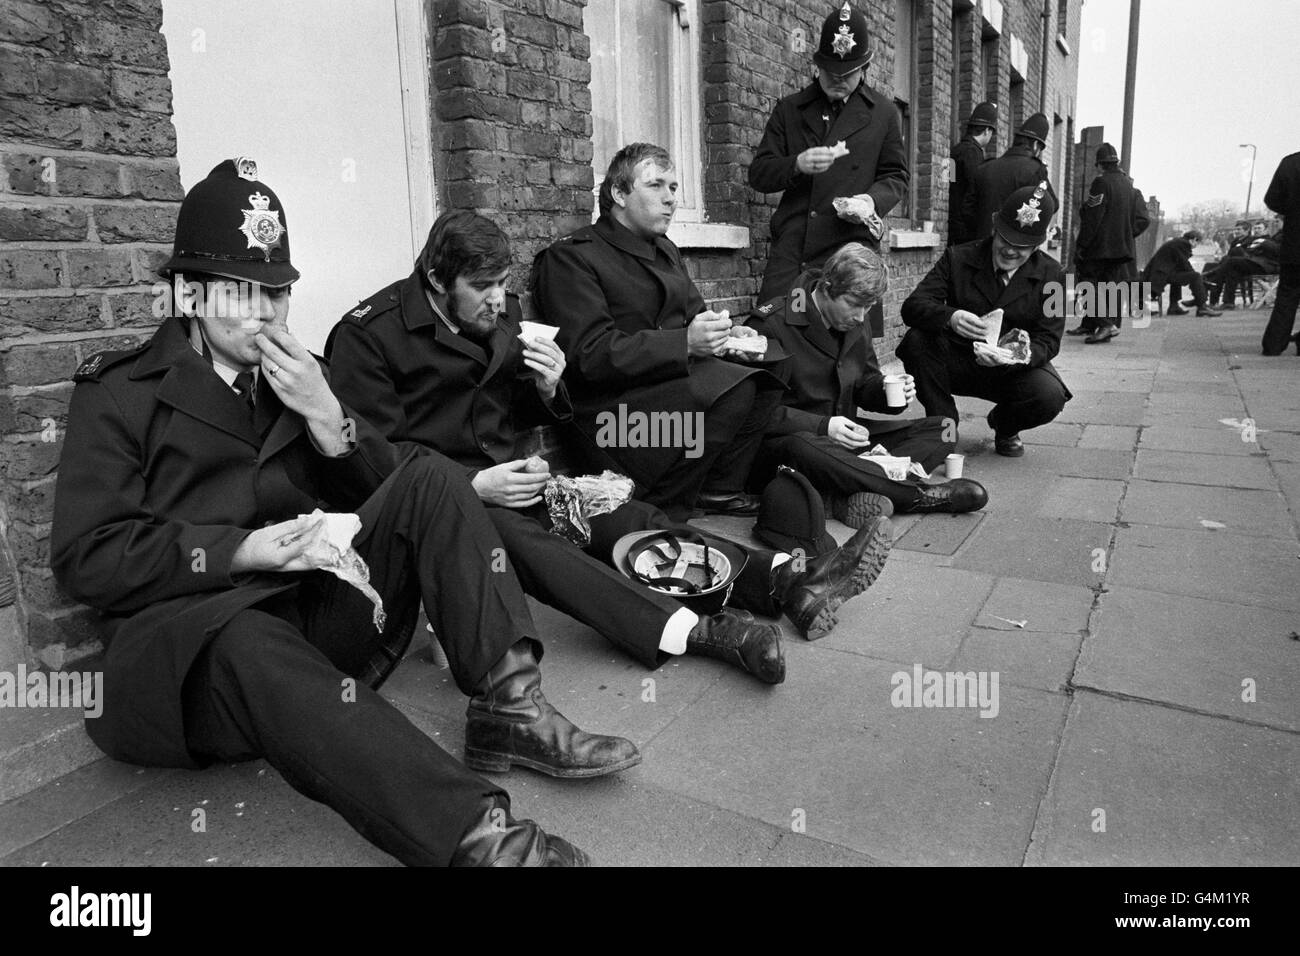 Steel Works Picket - Police officers Eat Lunch - Sheerness - Stock Image